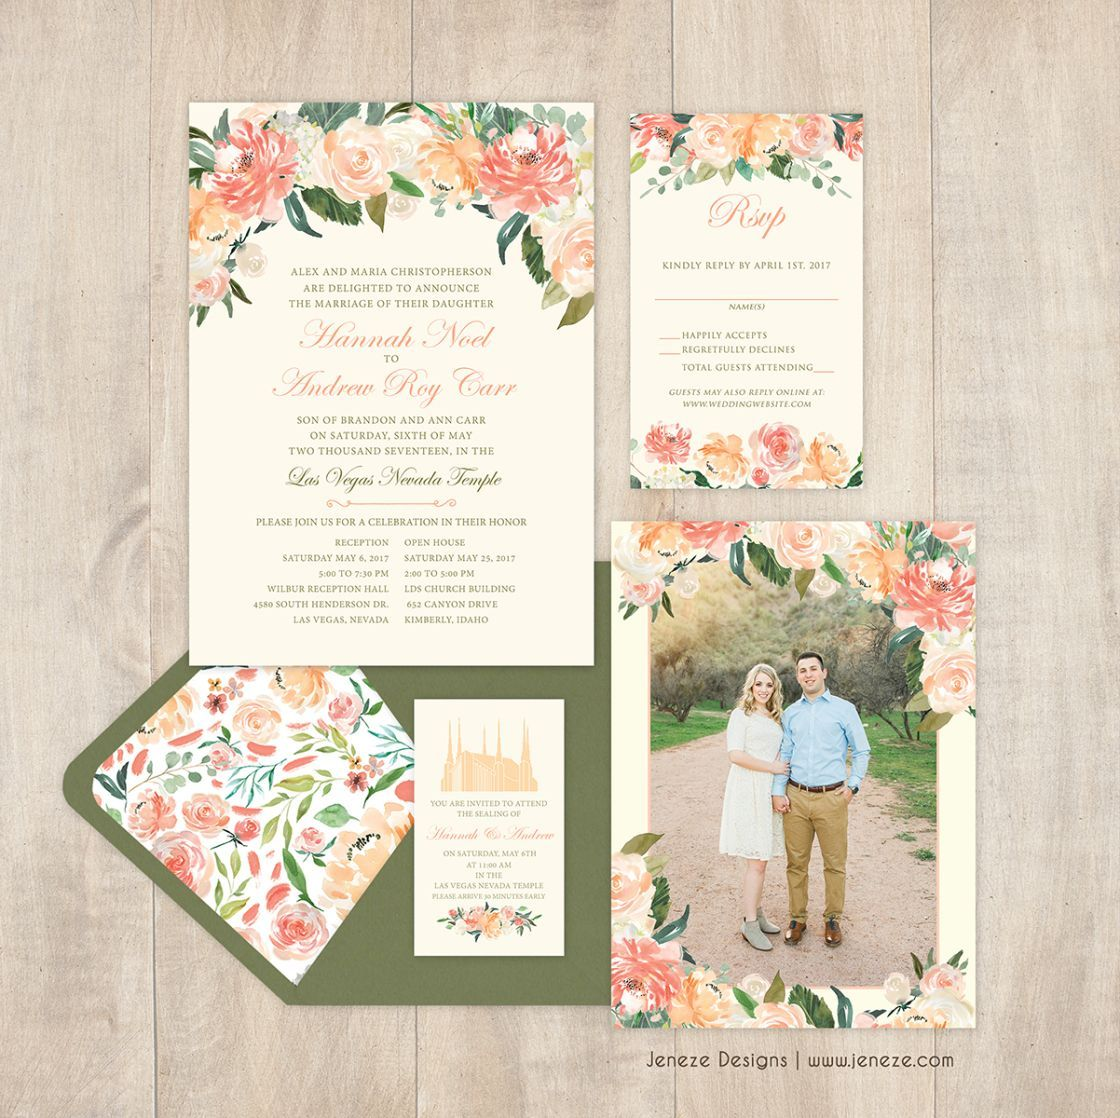 Pink and peach floral wedding invitations, perfect for a spring or ...